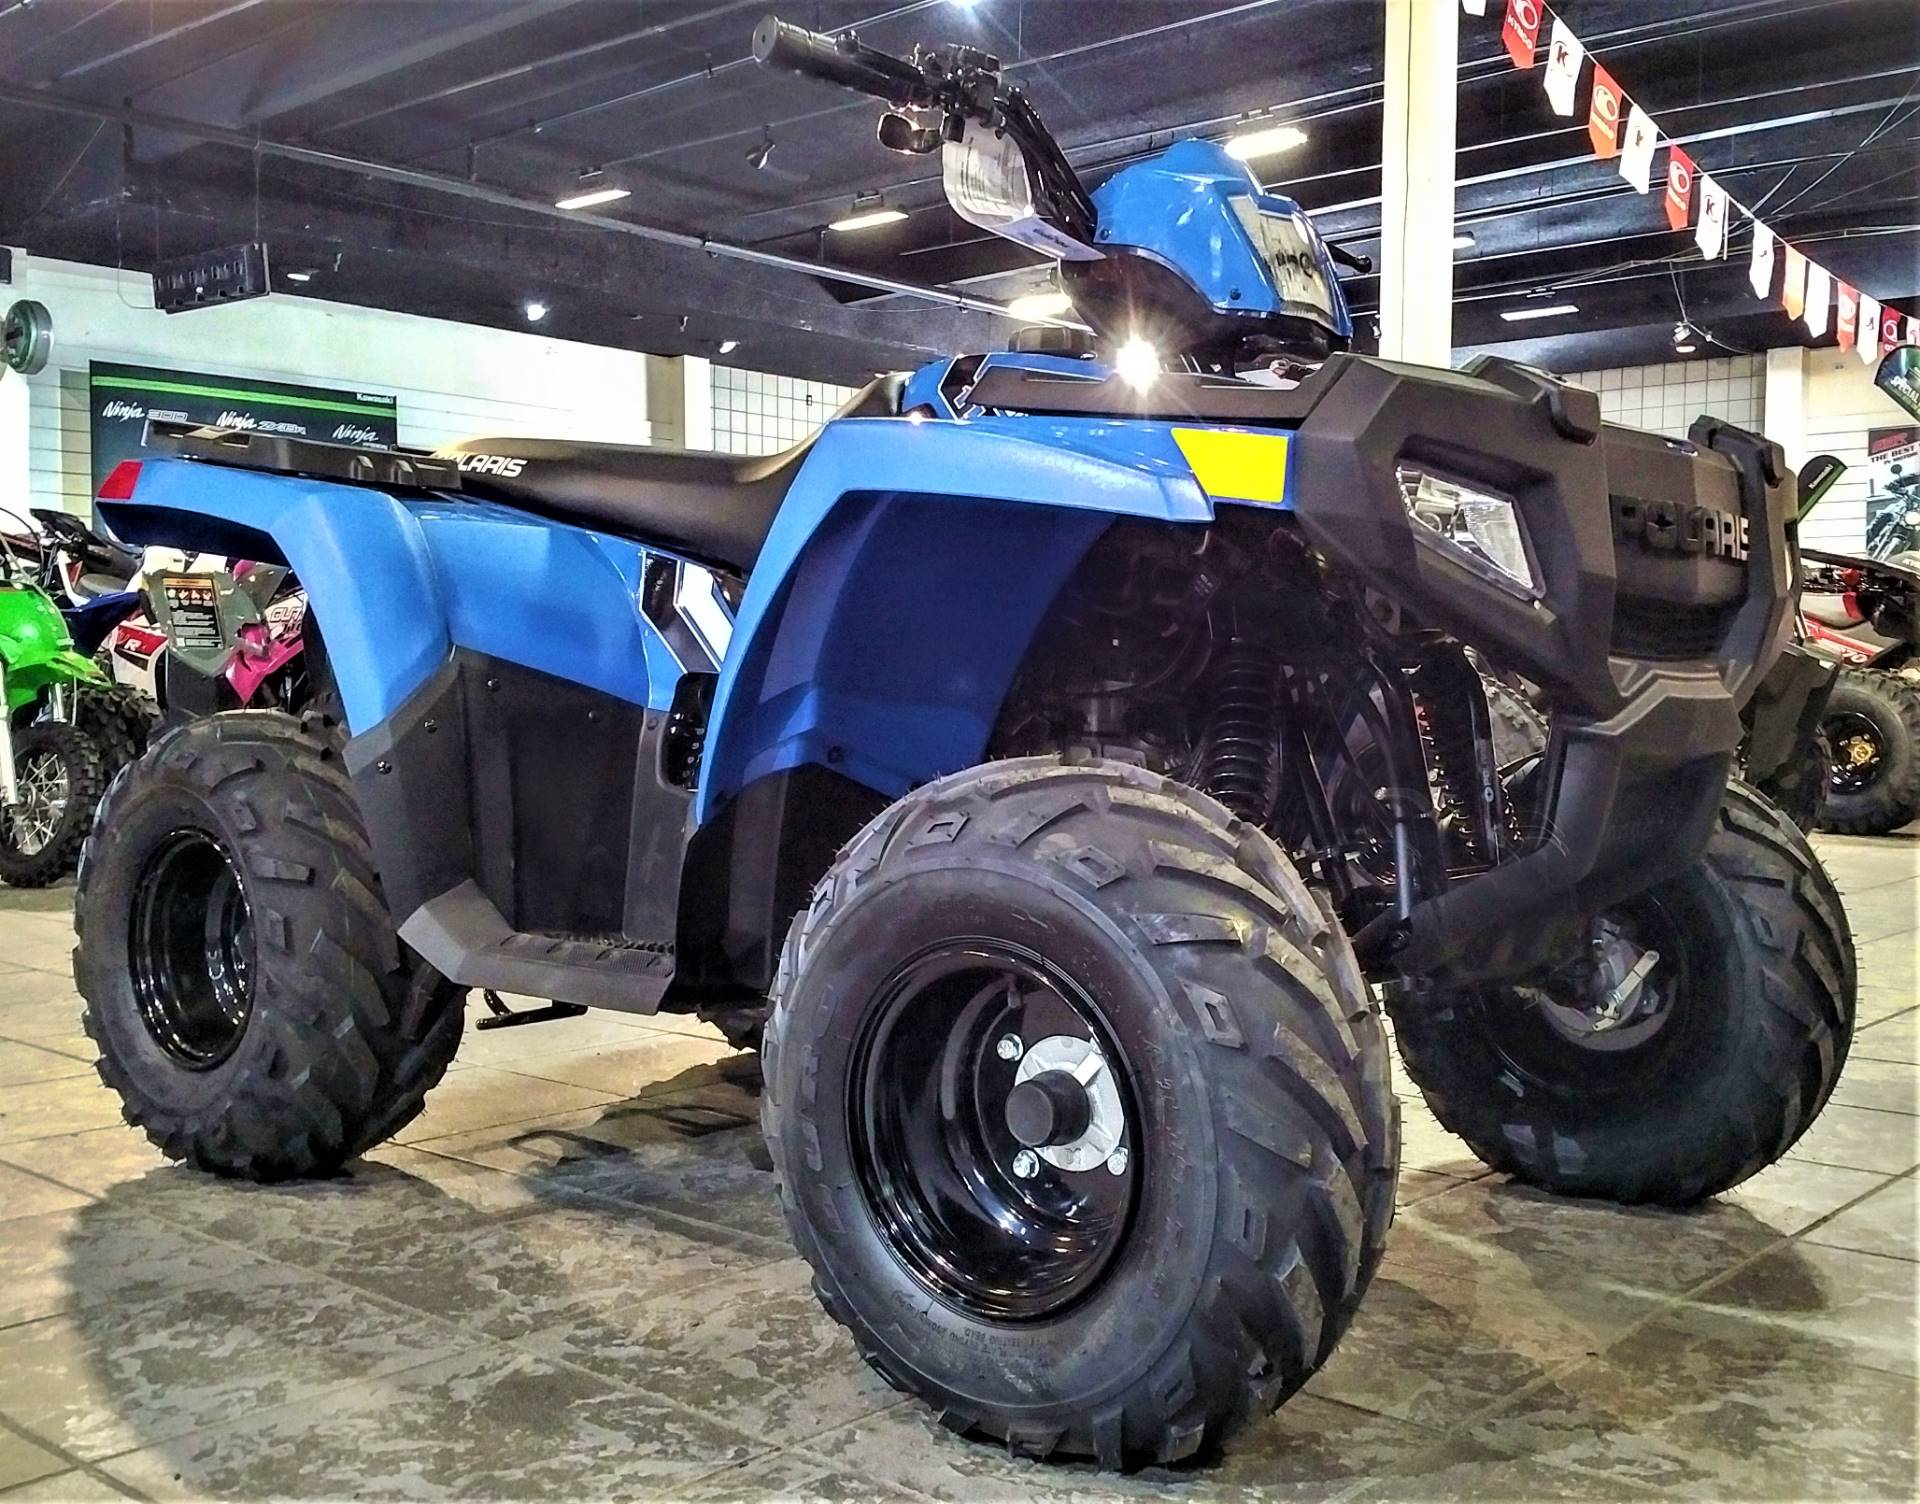 2021 Polaris Sportsman 110 EFI in Salinas, California - Photo 4